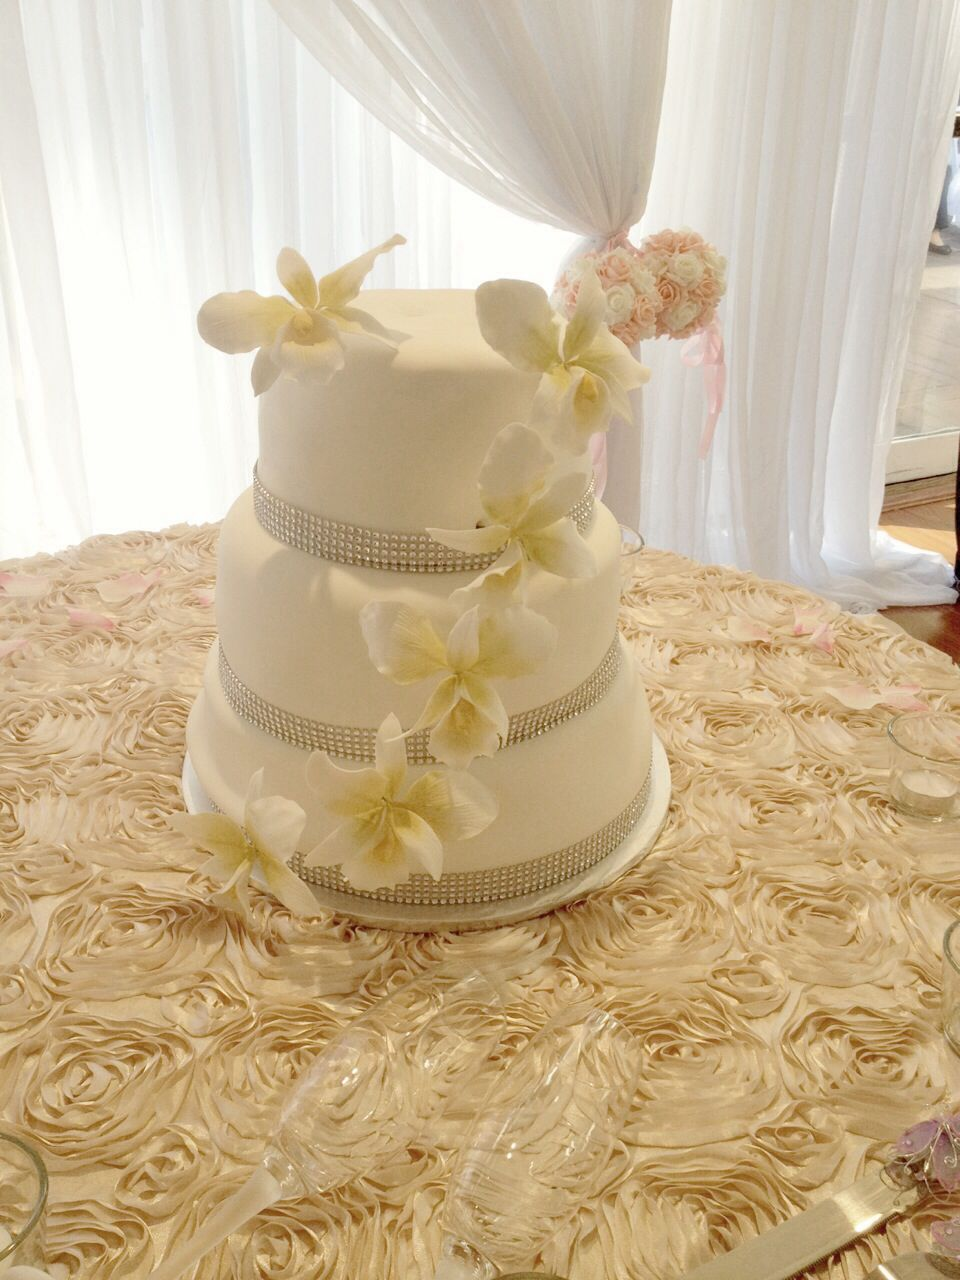 Edible orchid flower wedding cake | Orchid cake | Pinterest | Orchid ...